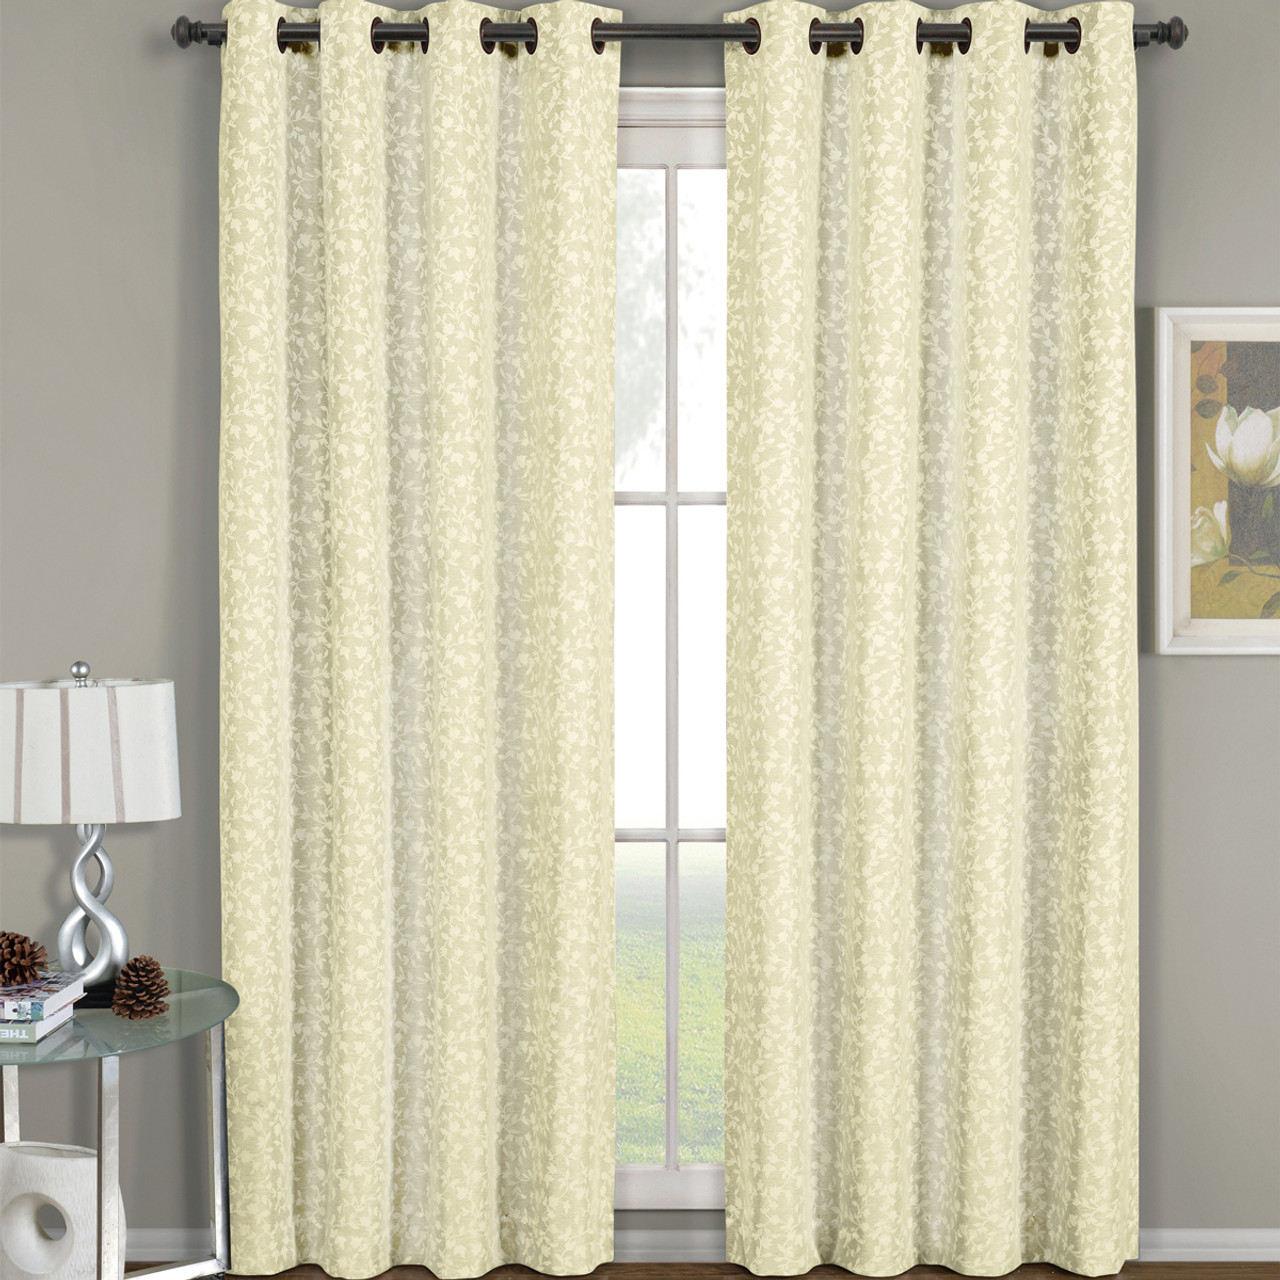 expand sheer p panel panels soho to grommet curtain click curtains tailored